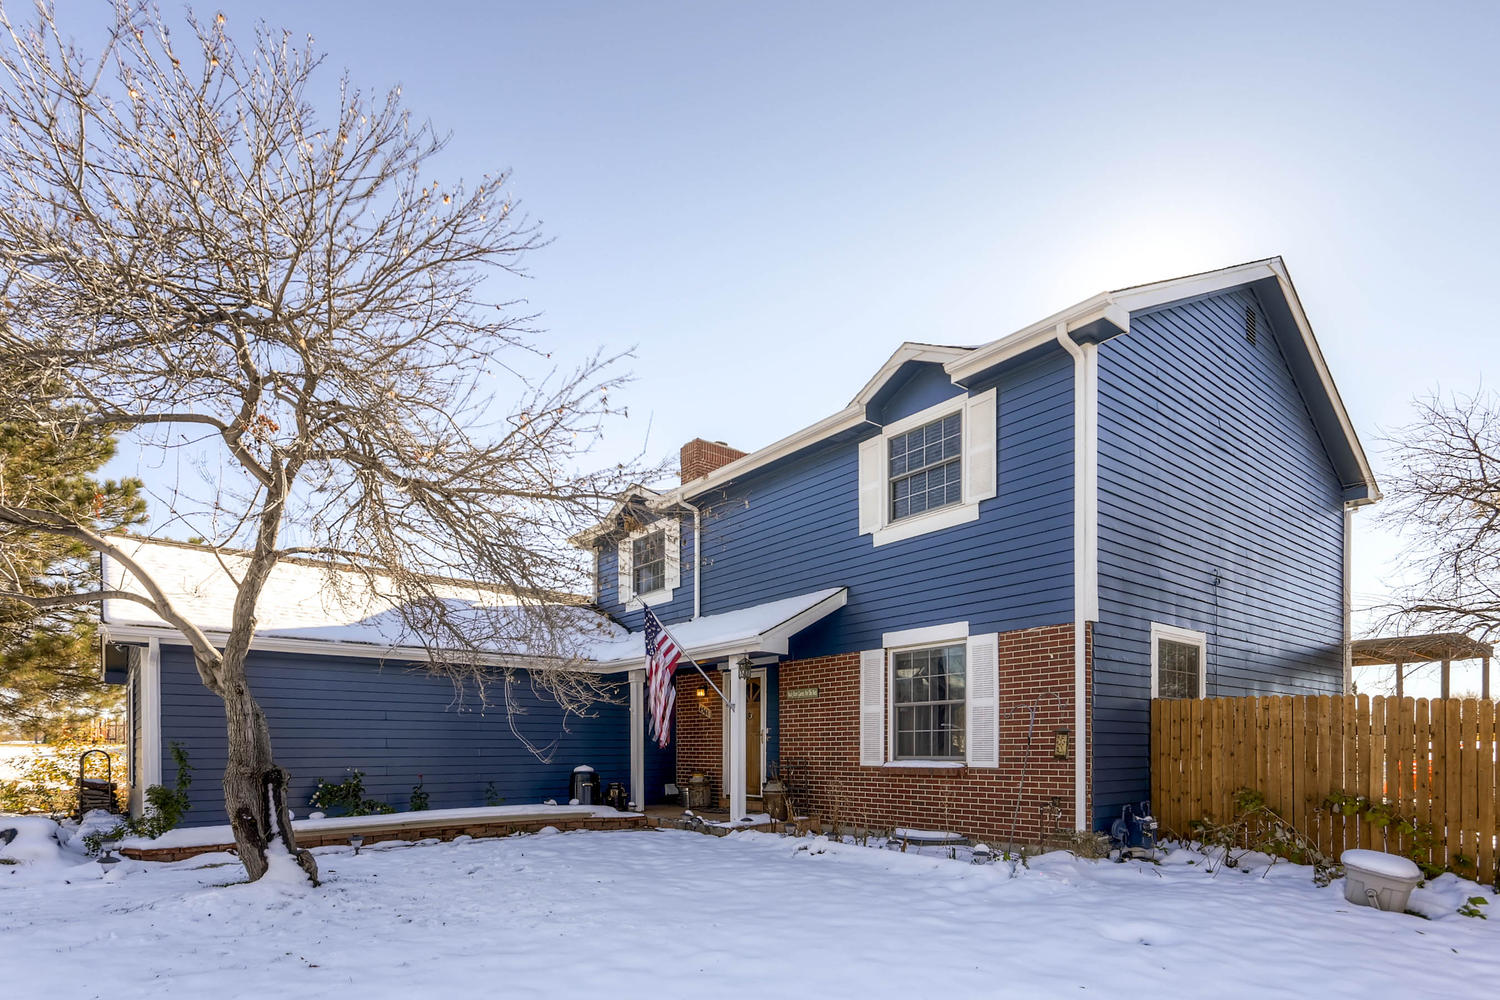 4361%2BS%2BEvanston%2BCt%2BAurora%2BCO large 001 2 Exterior%2BFront 1500x1000 72dpi Just Listed in Aurora! Affordable and Adorable in Aurora...